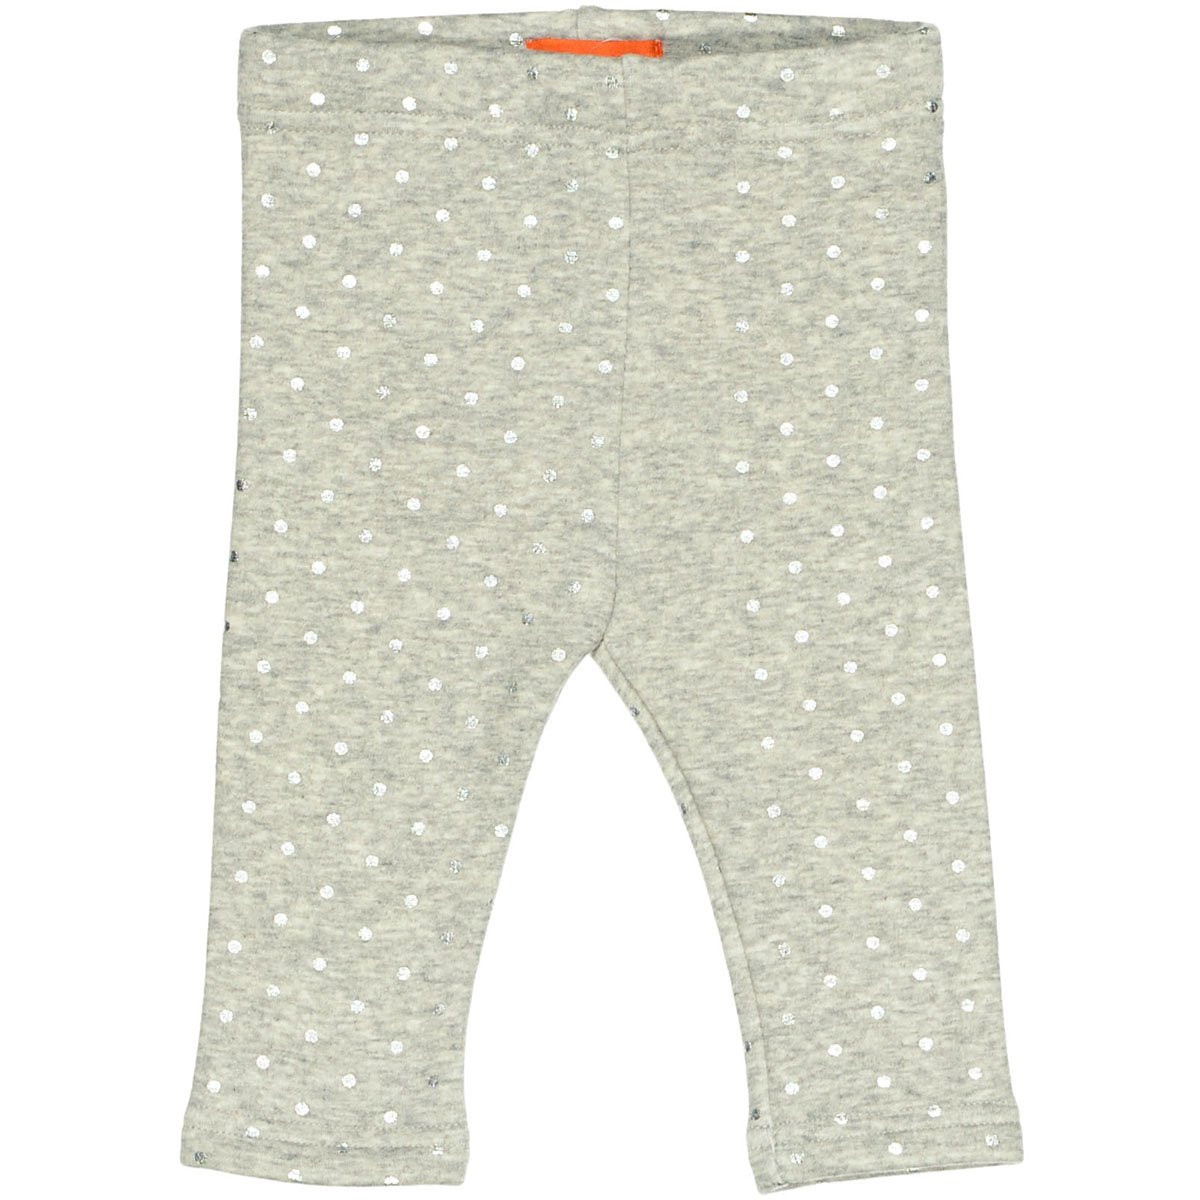 Staccato Mädchen Thermoleggings Punkte - Mid Grey (230065509) KATAG AG